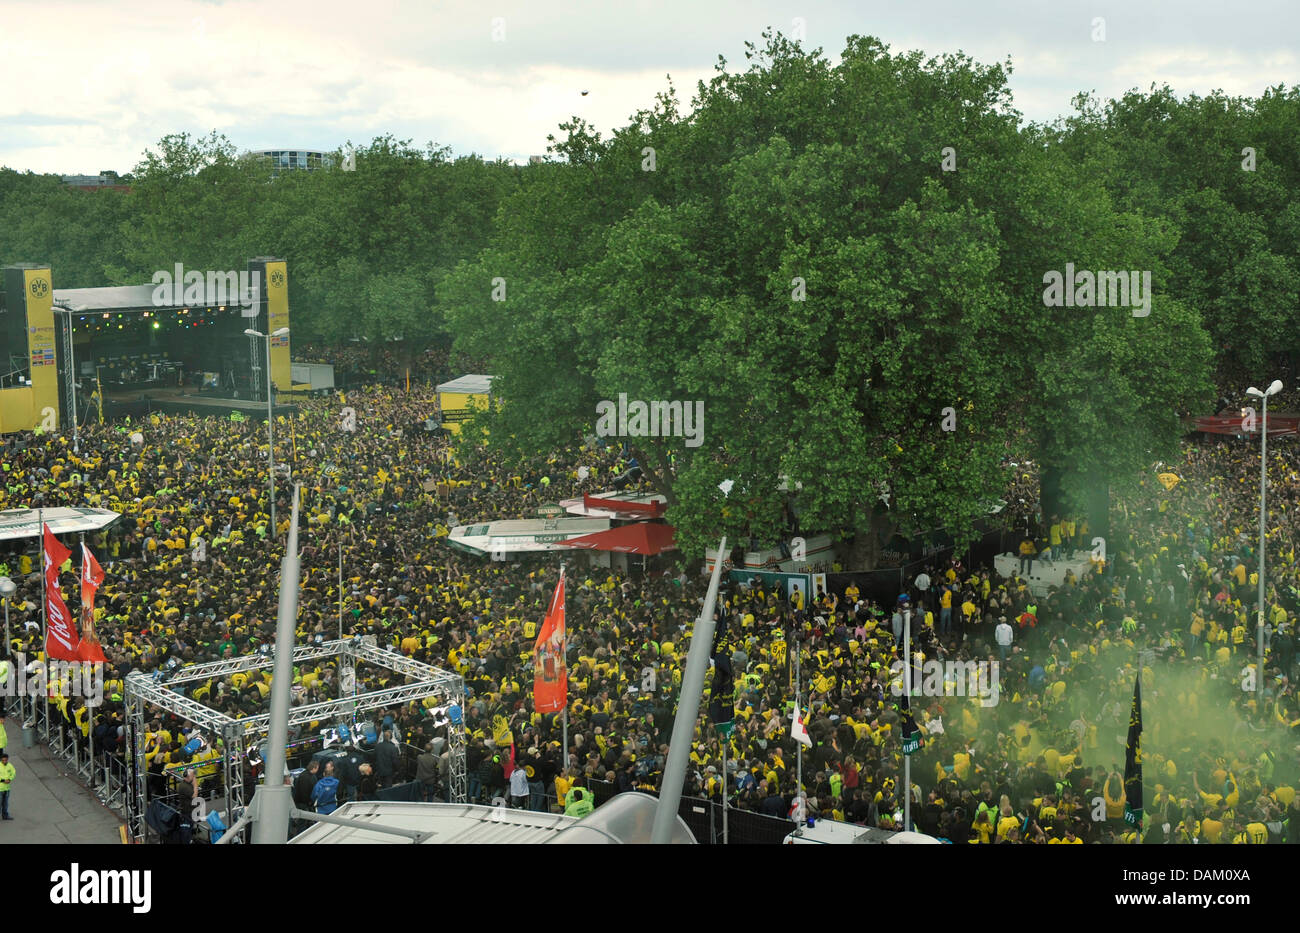 Crowd of fans gather in front of the stage near the Westfalenhallen venue in Dortmund, Germany, 15 May 2011. Borussia - Stock Image